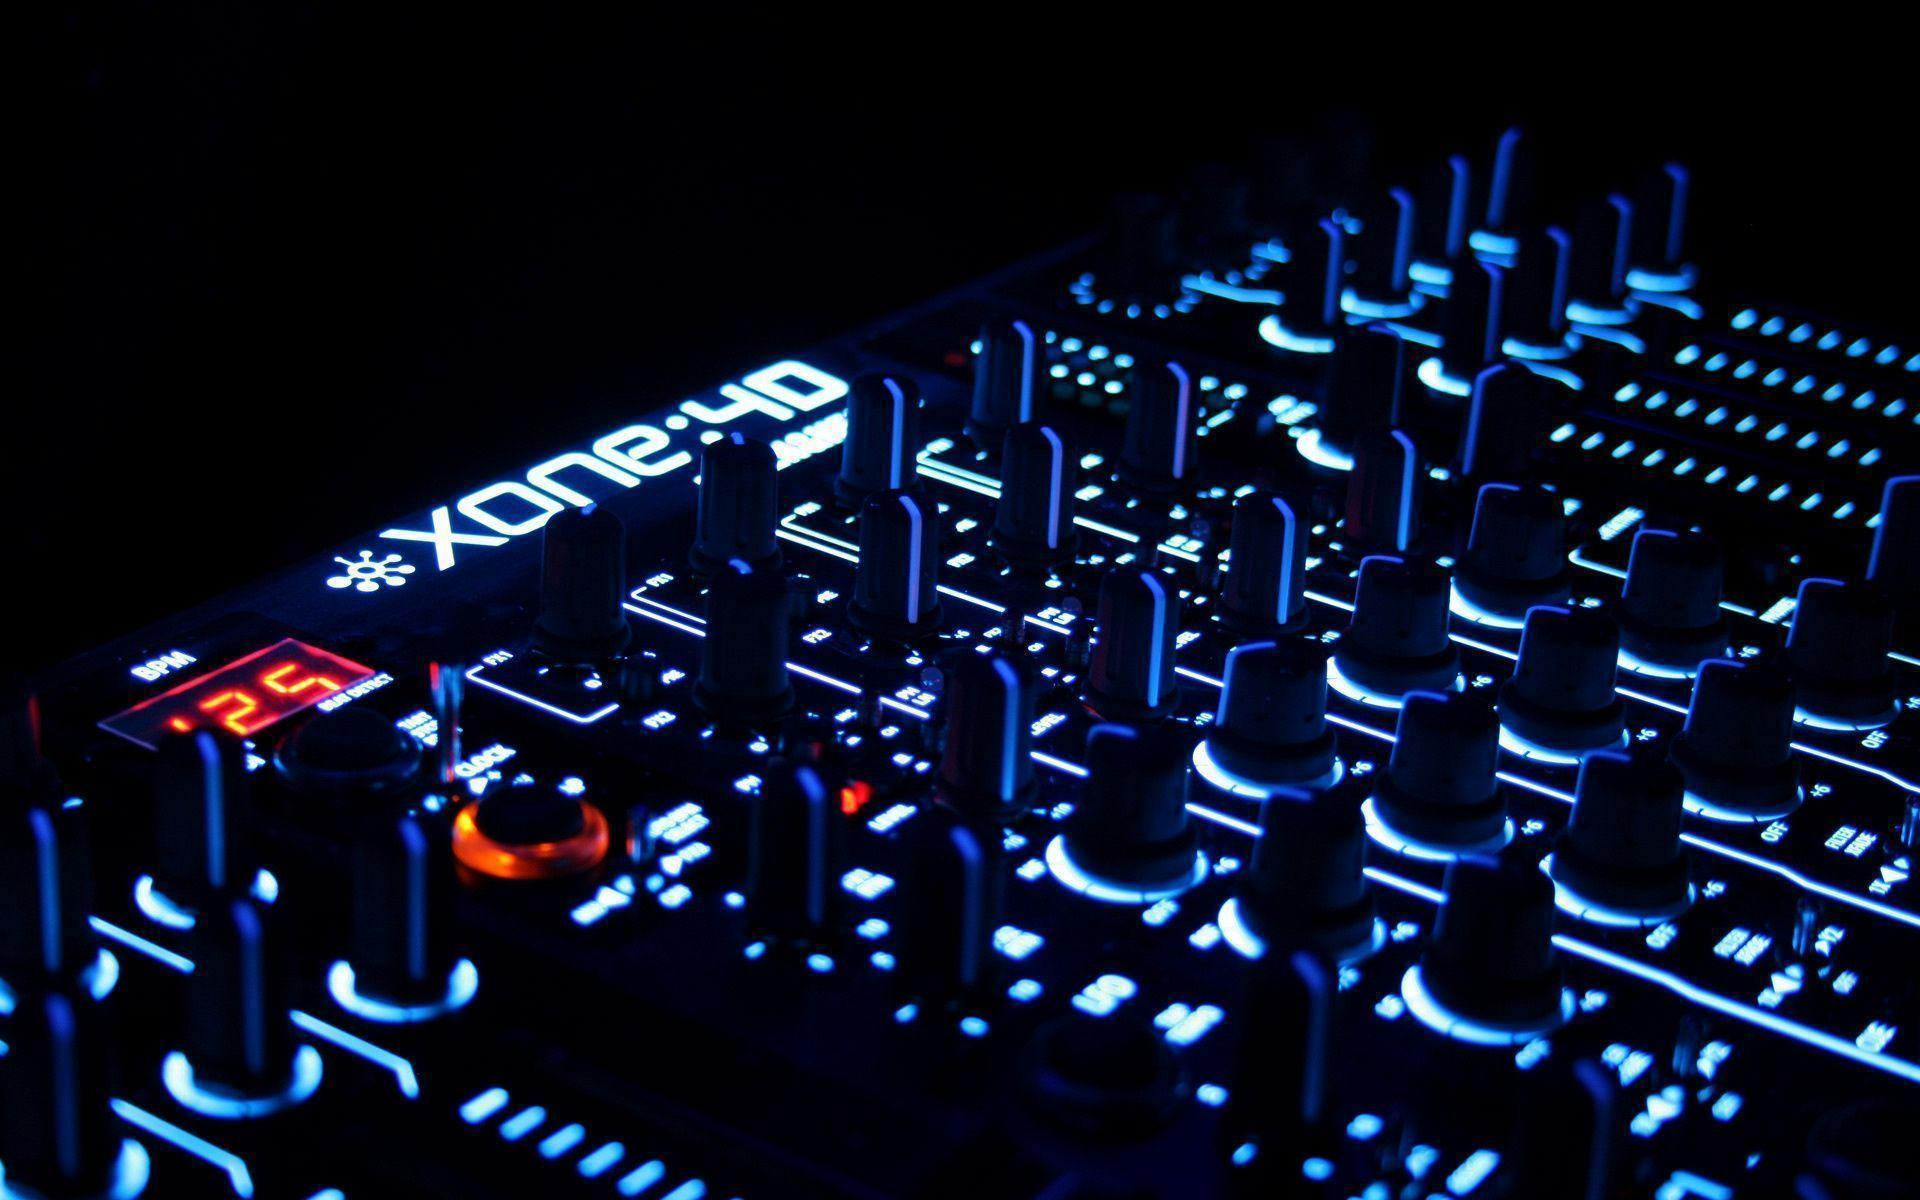 Electro House Wallpapers - Full HD wallpaper search